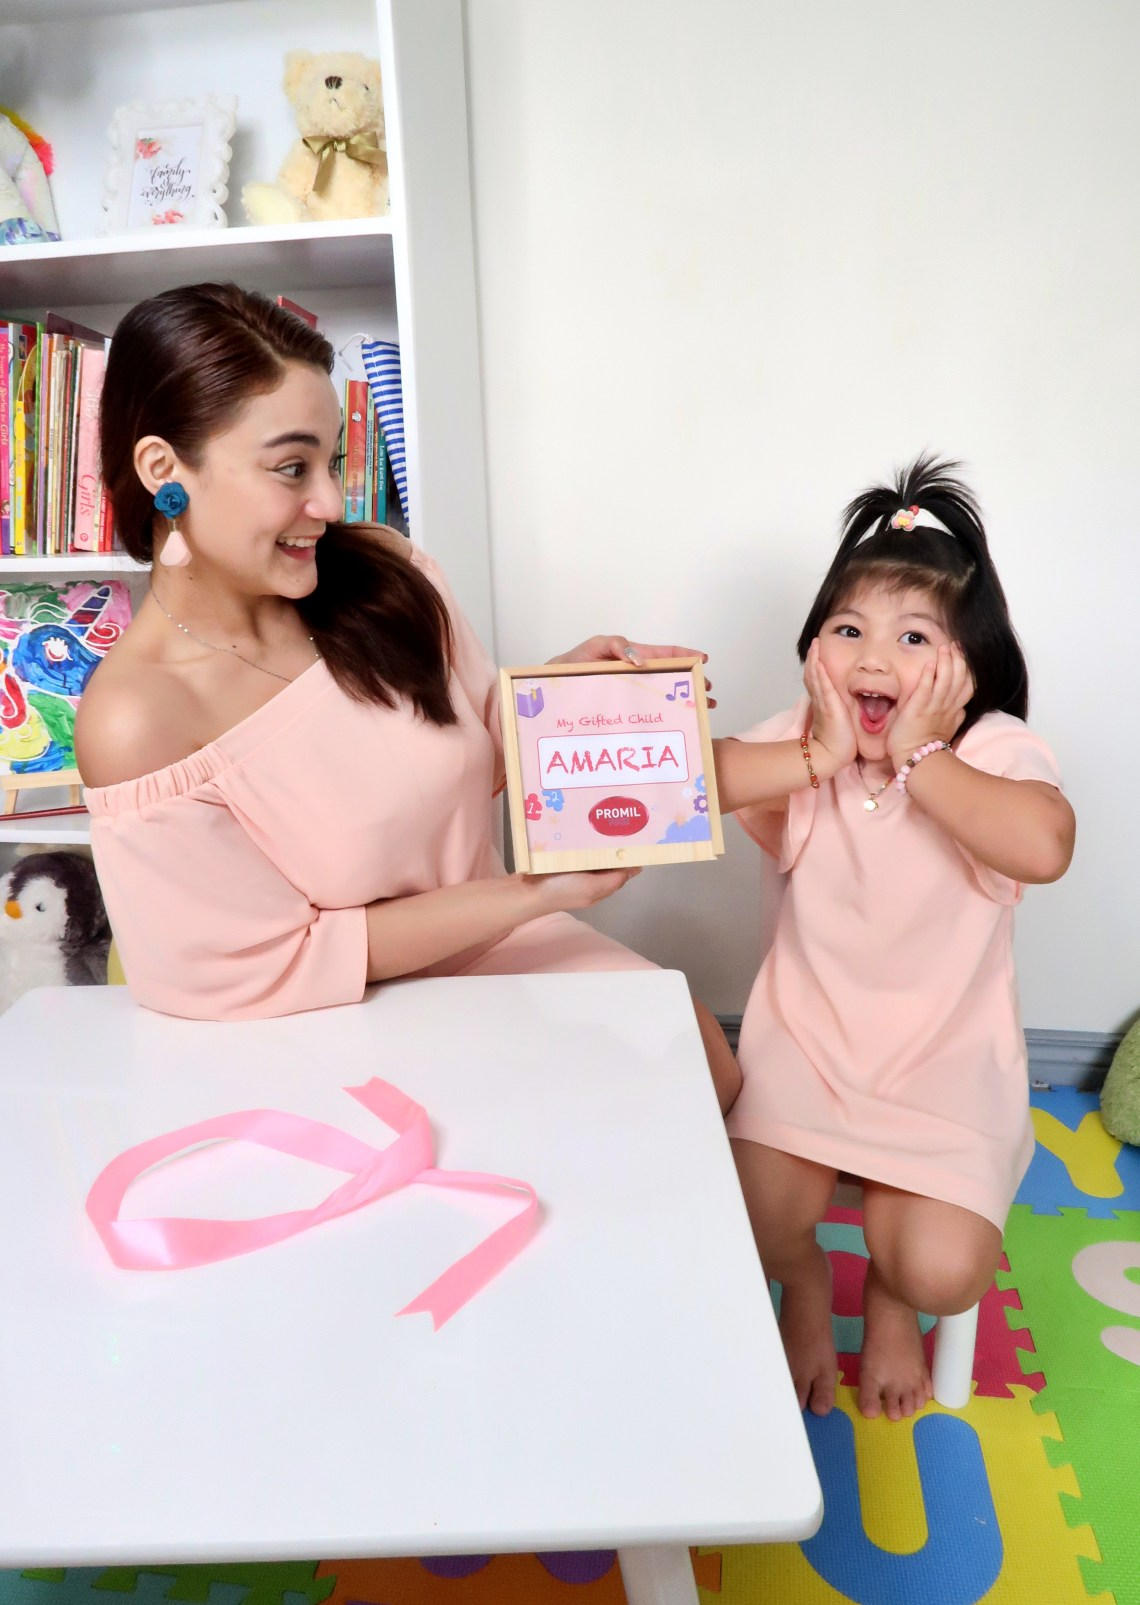 dyosathemomma: How to spot your child's talent - How to nurture child's talent-mommybloggerph-AmariaNiszha-Promil4-AmariaNish